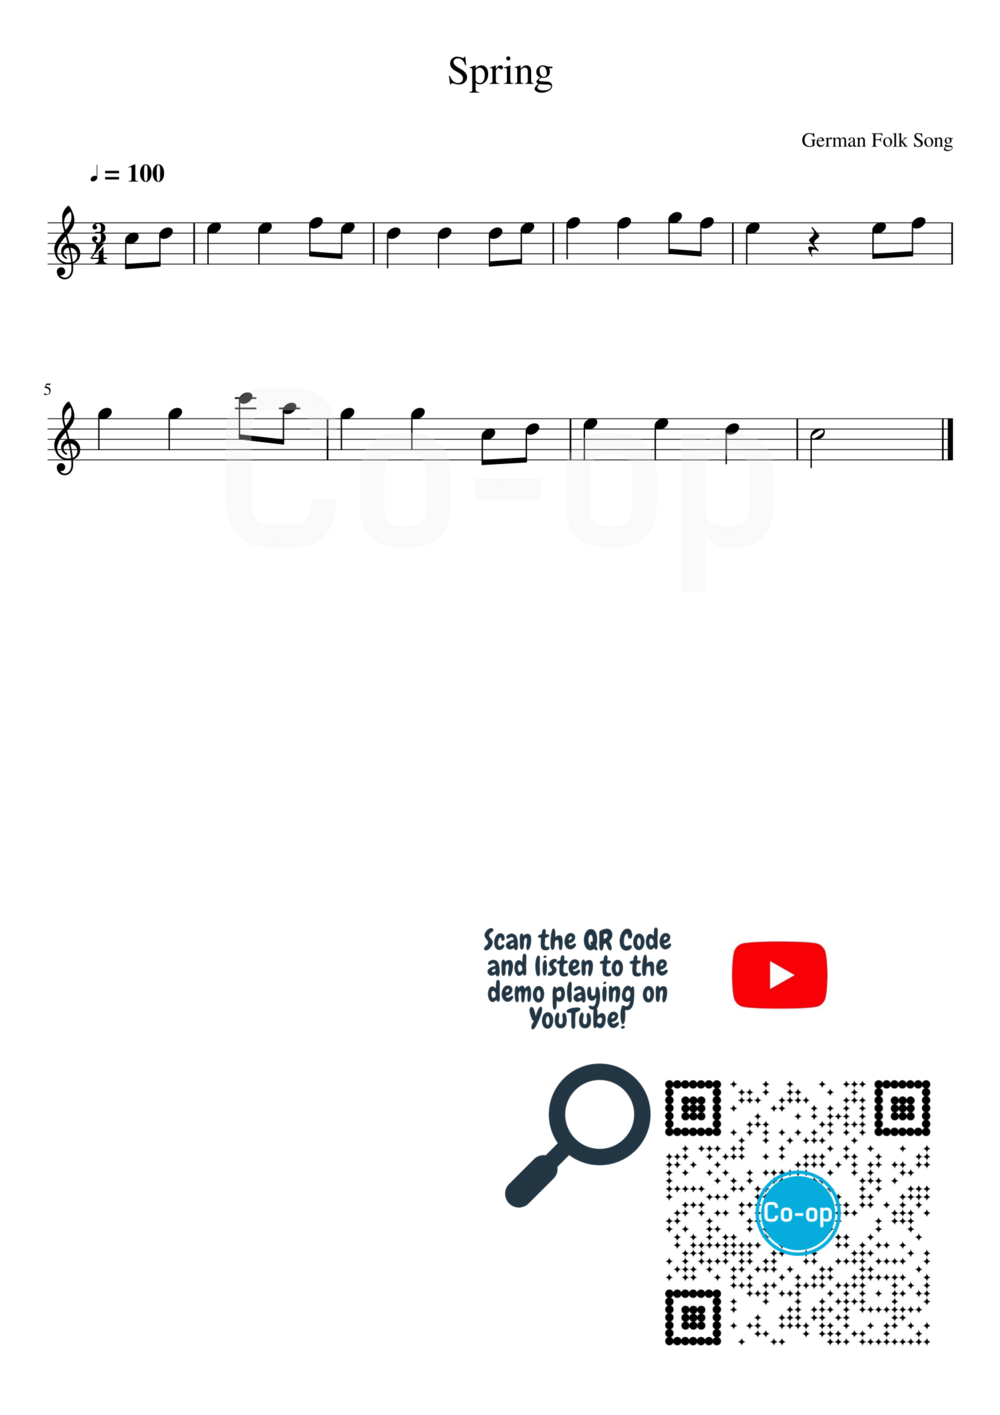 Spring | Staff Notation | Free Sheet Music